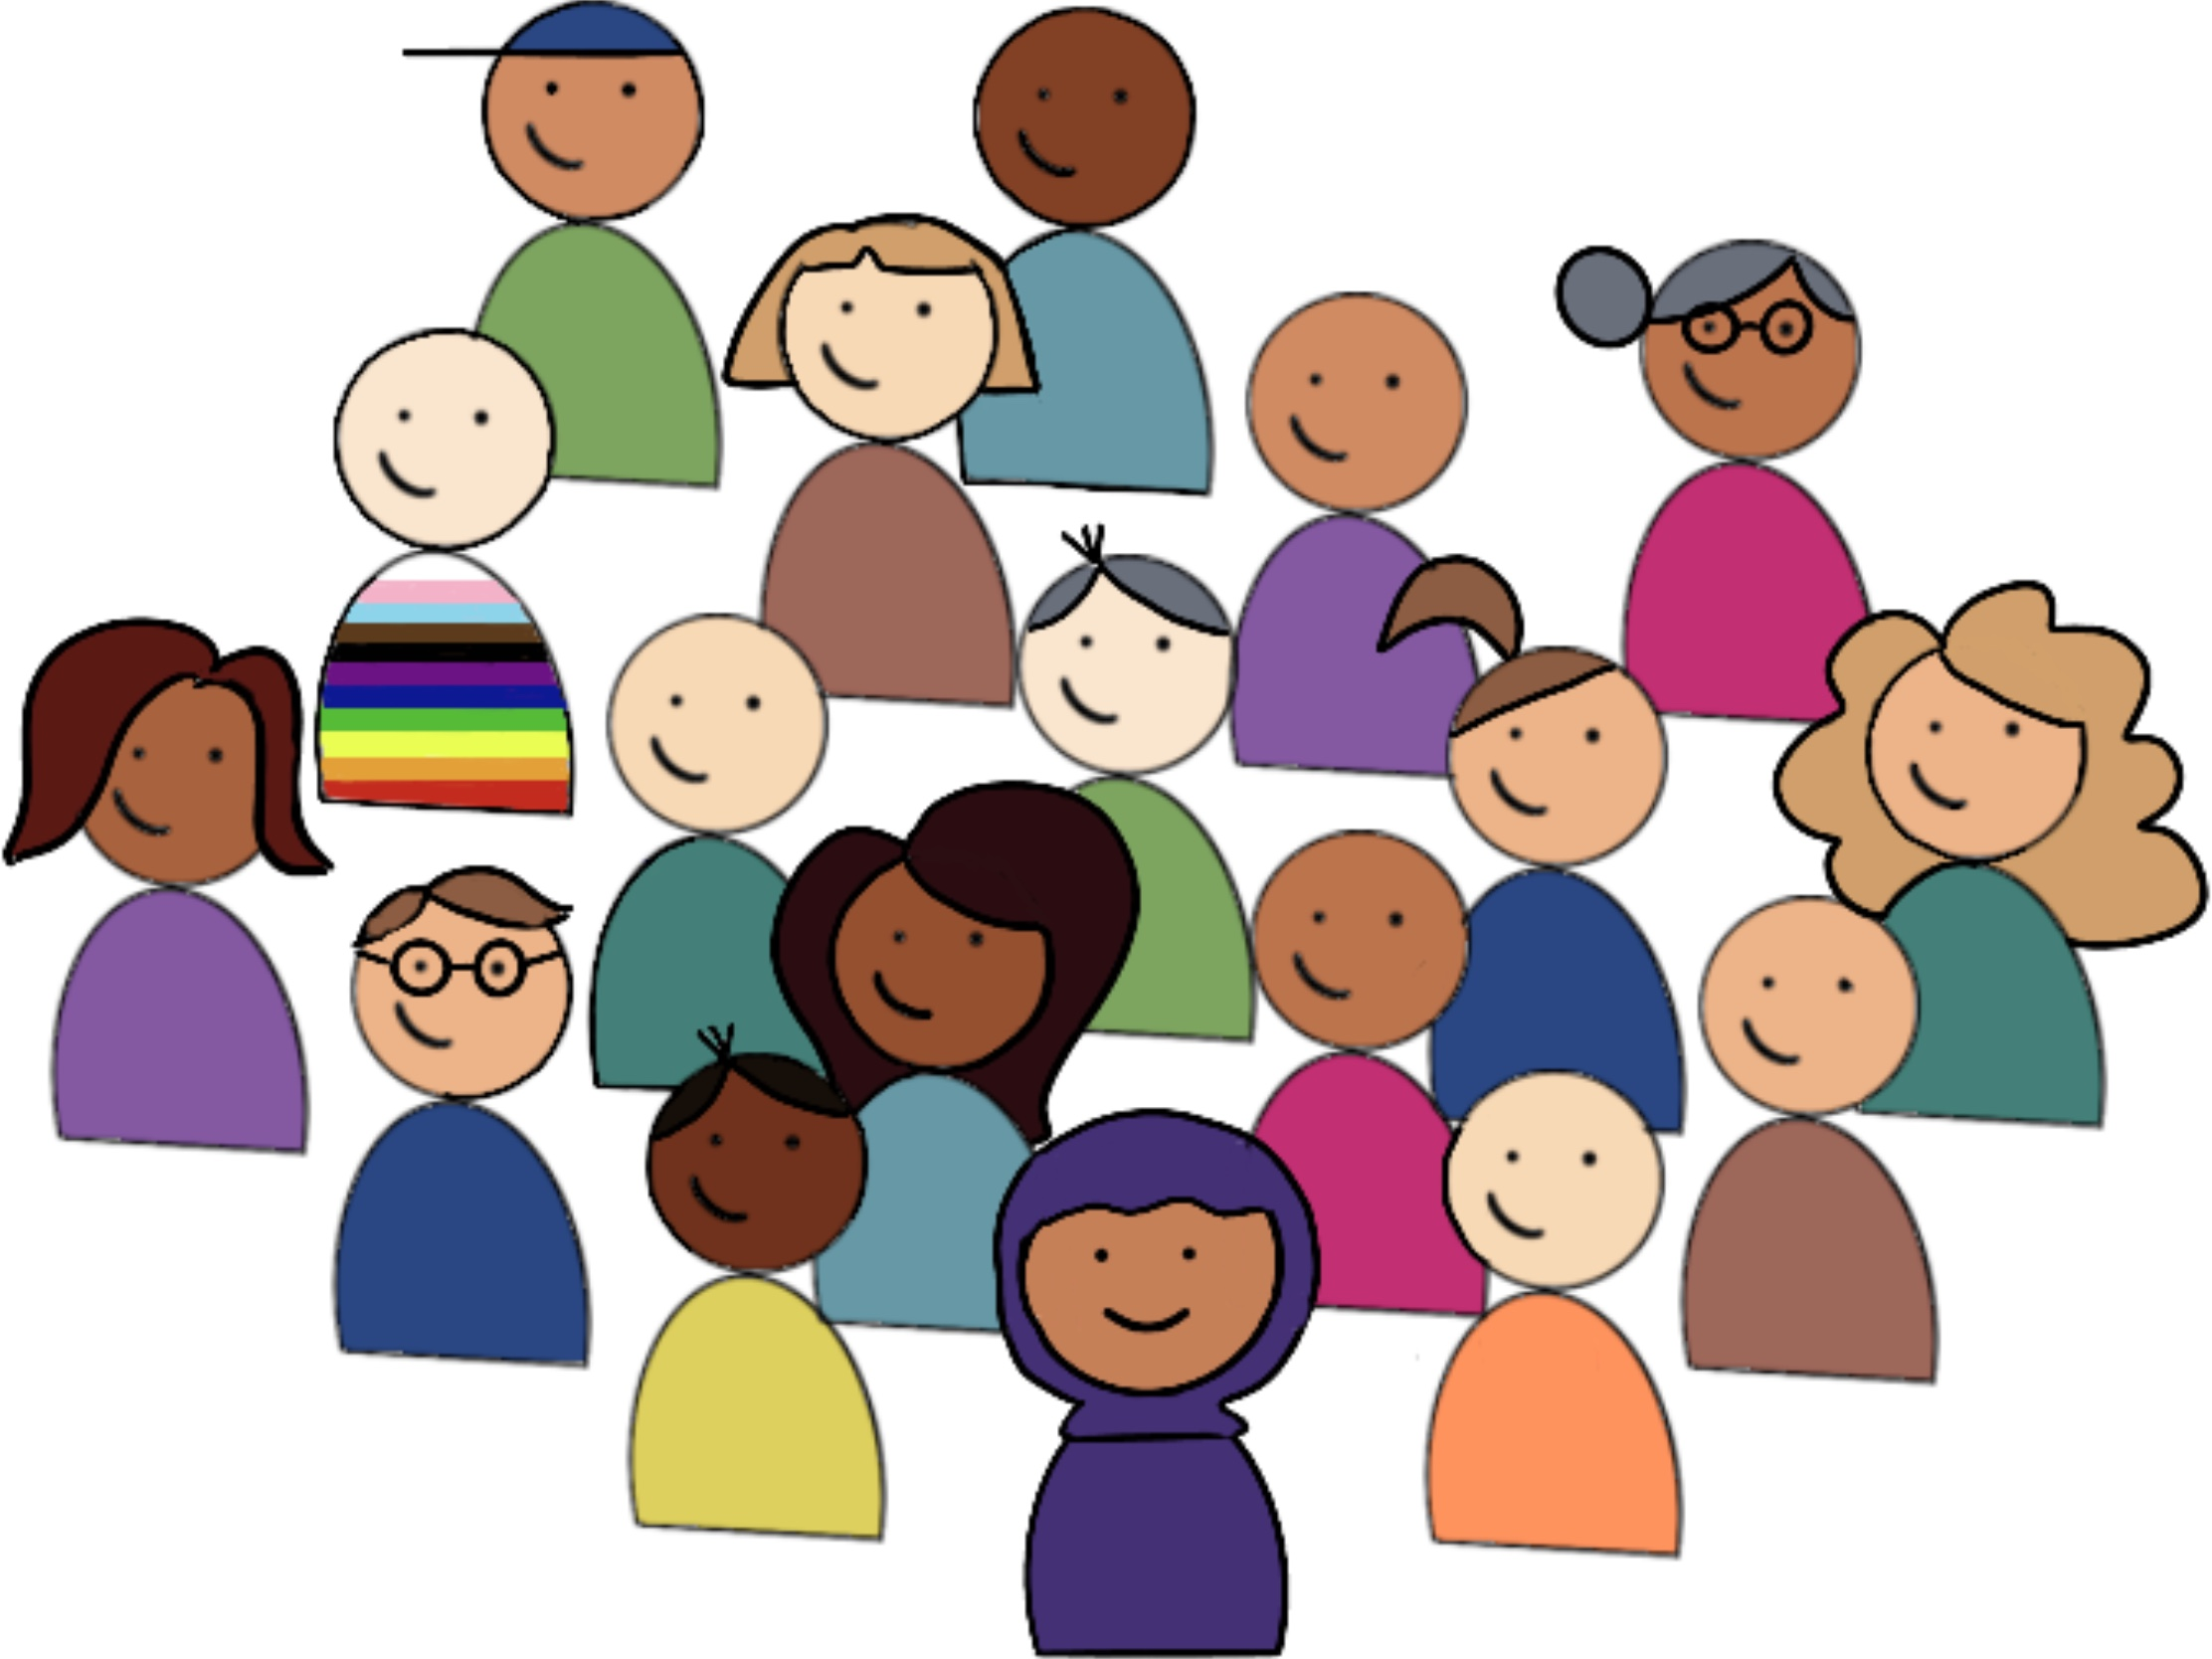 cartoon image of lots of people standing together